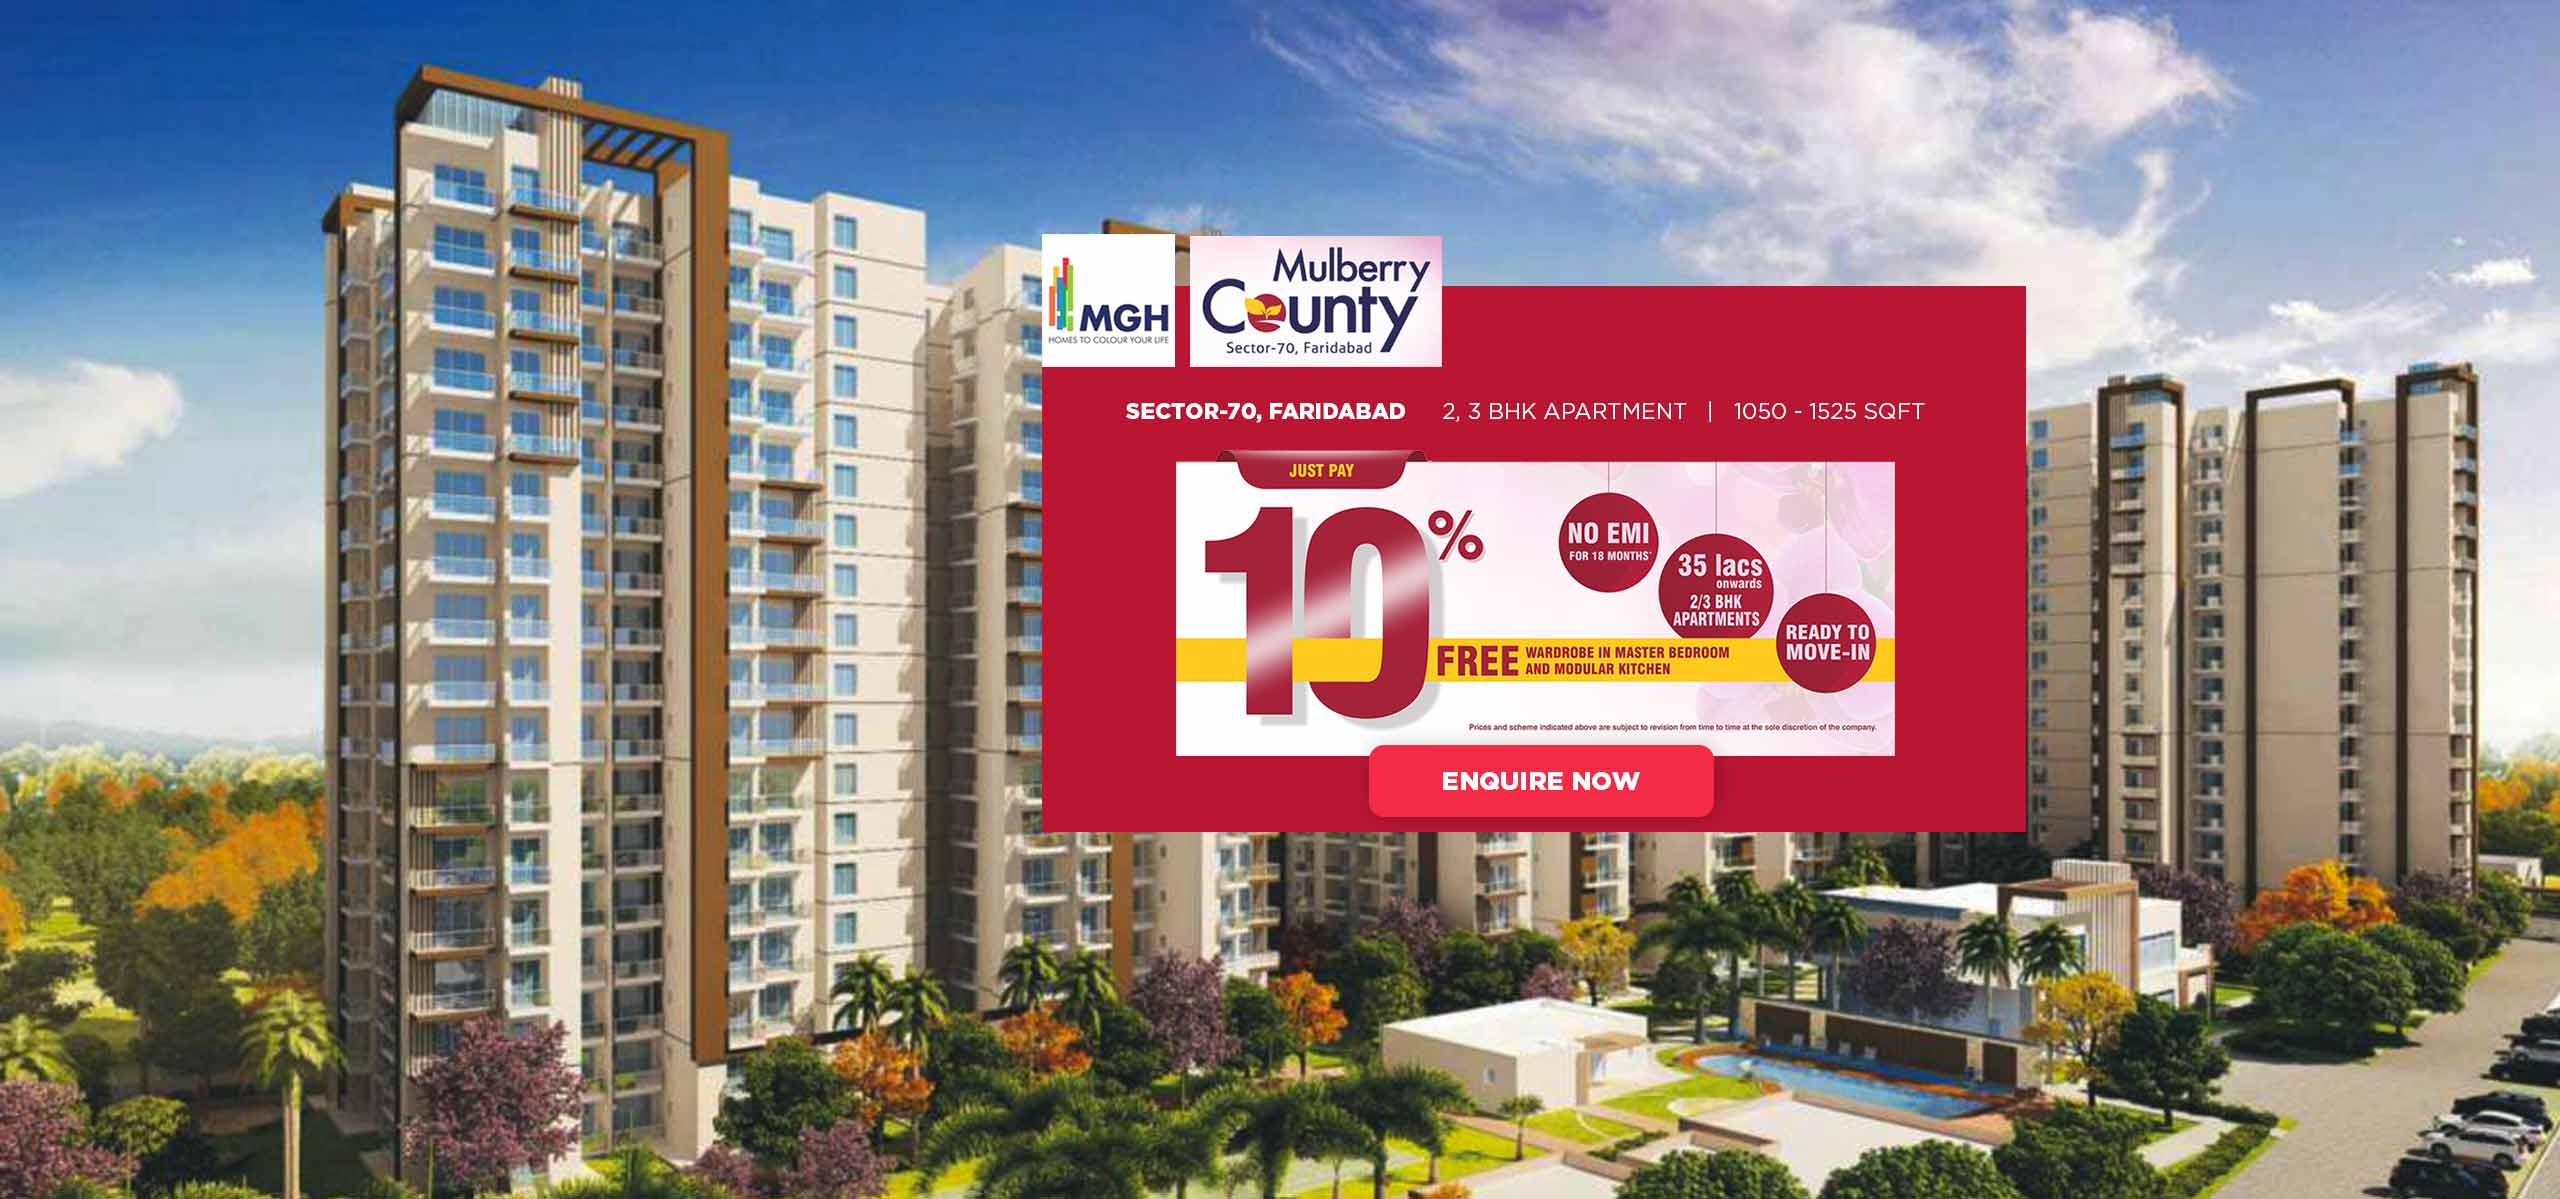 MGH Mulberry County Sector 70 Faridabad banner